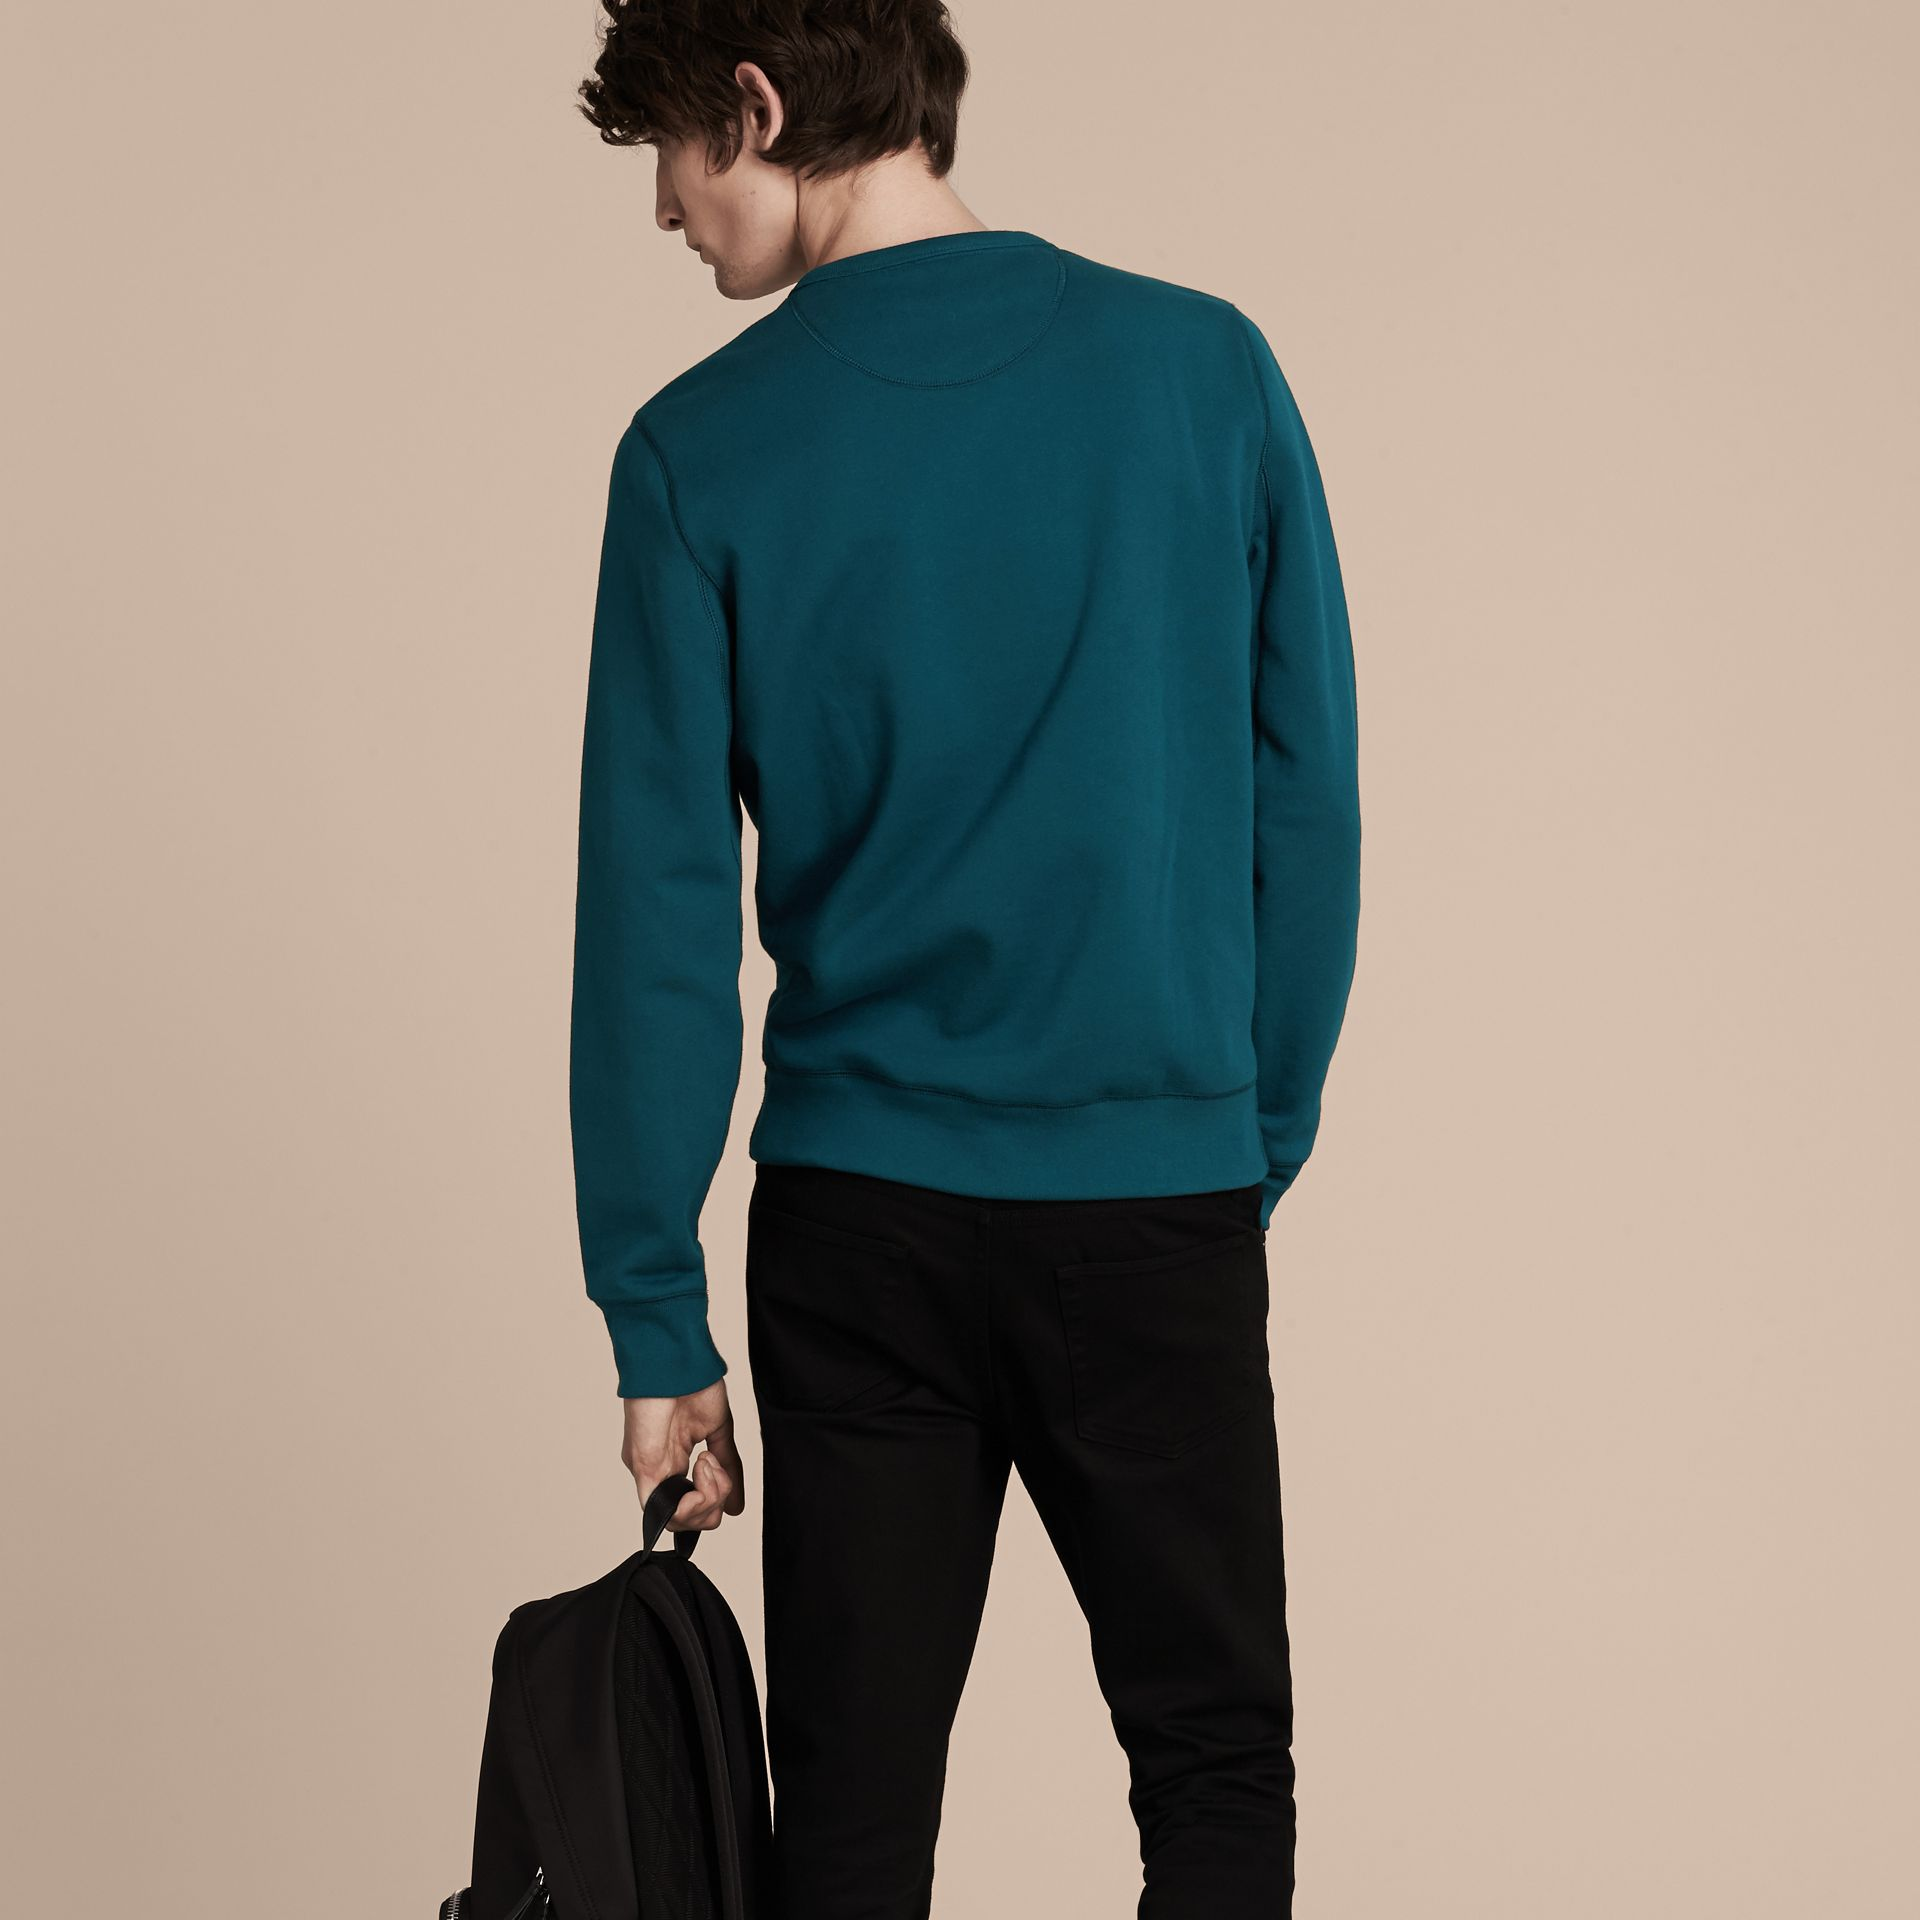 Mineral blue Cotton Blend Jersey Sweatshirt Mineral Blue - gallery image 3